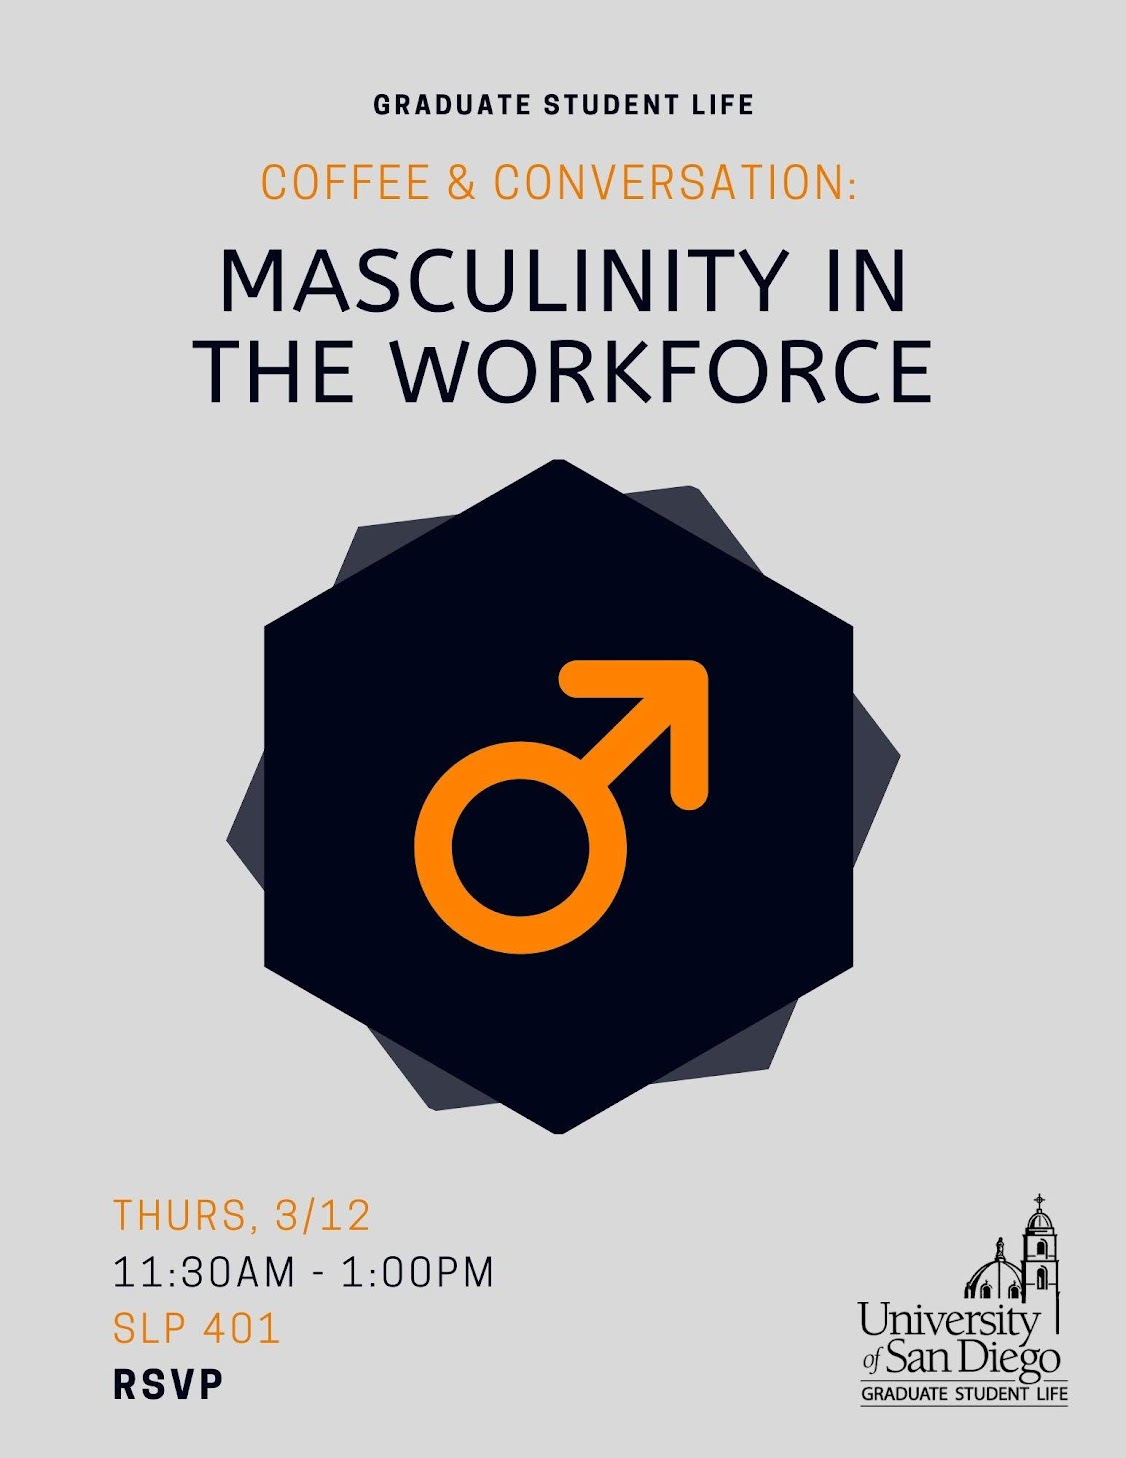 Coffee & Conversation: Masculinity in the Workforce, Thursday, March 12 from 11:30am-1:00pm in SLP 401